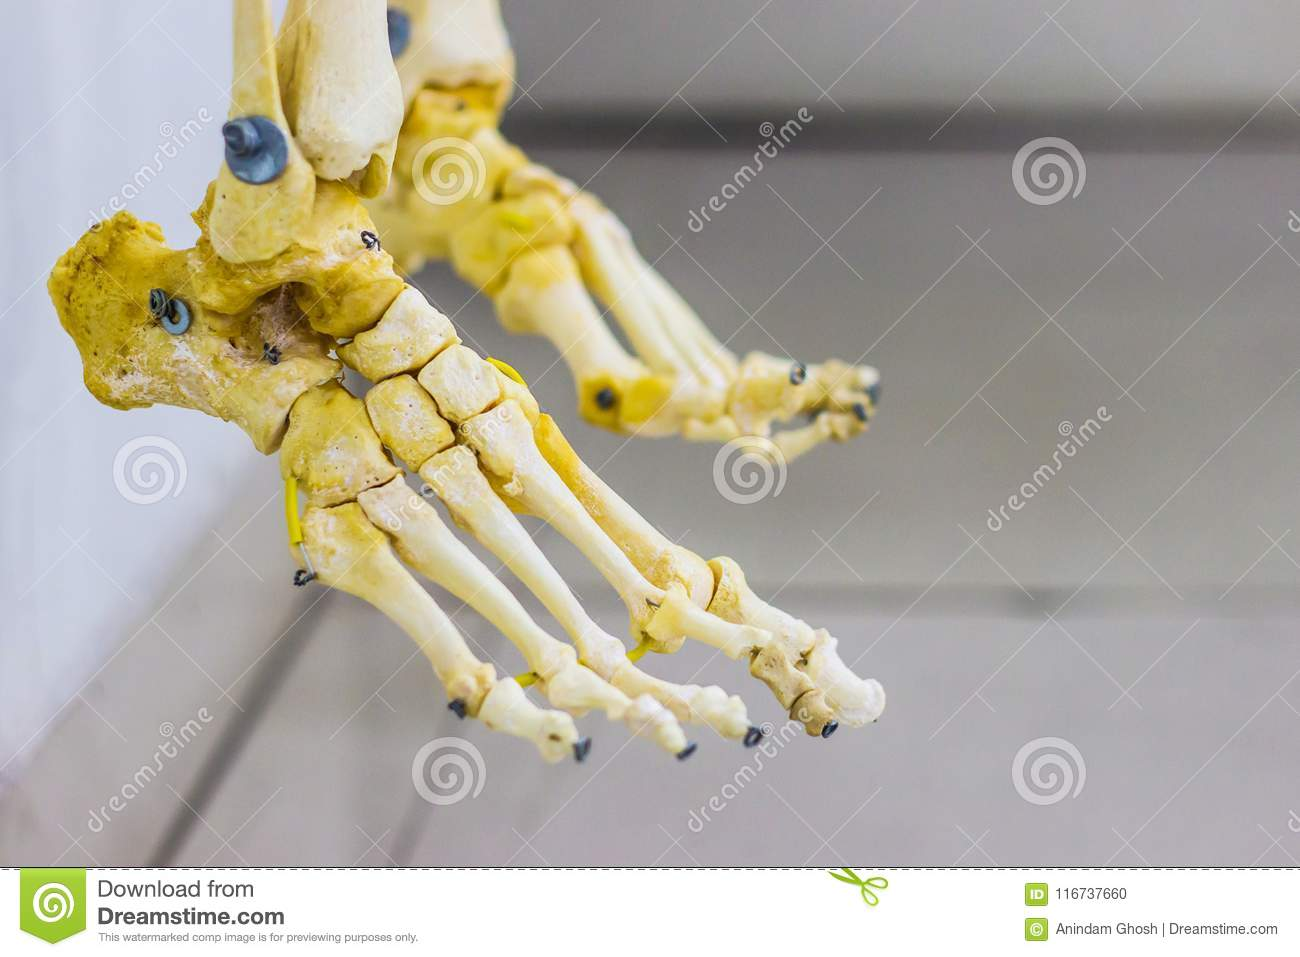 Articulated Tarsal Metatarsal And Phalanges Bones Showing Human Foot